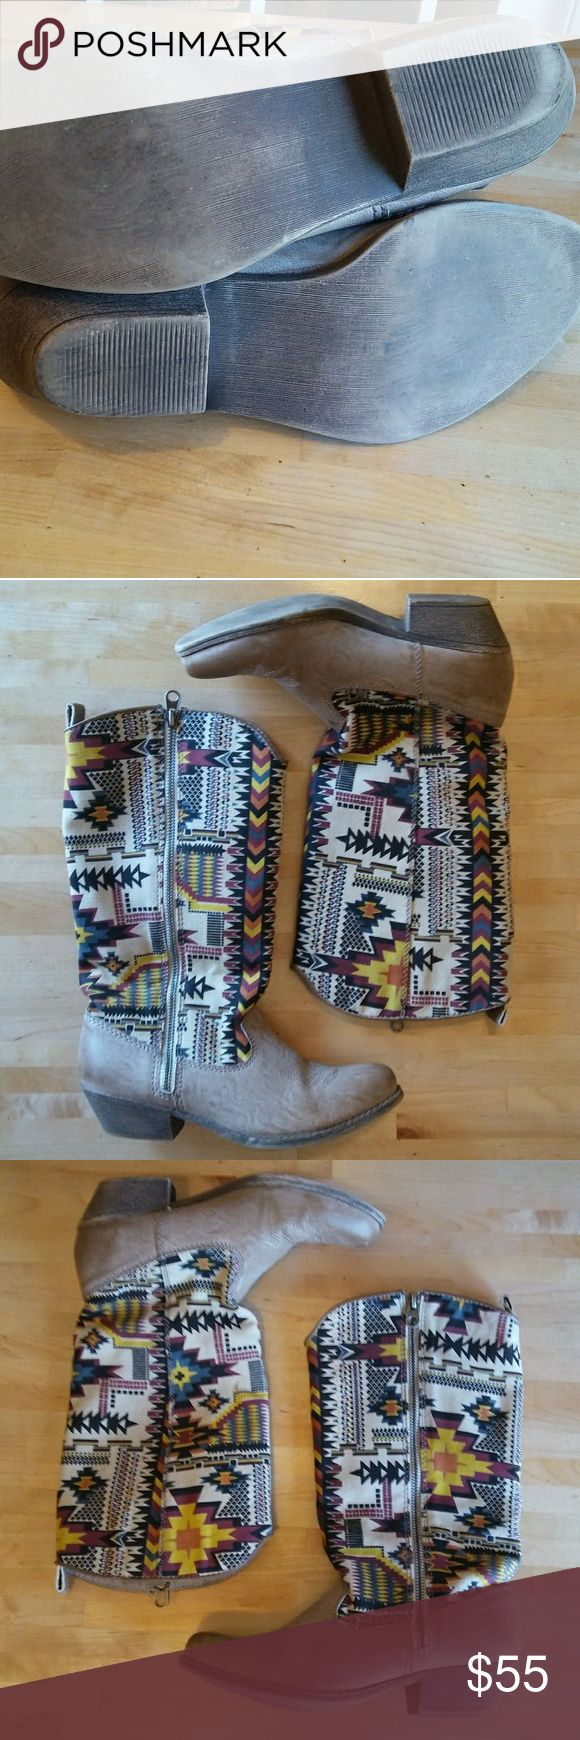 Aztec fabric cowboy boots More info on its way! Zipper on the outside. Traction looks decent. **No size tag but 90% sure these are a size 8, as that's my size and these fit me well. Big Buddha Shoes Heeled Boots